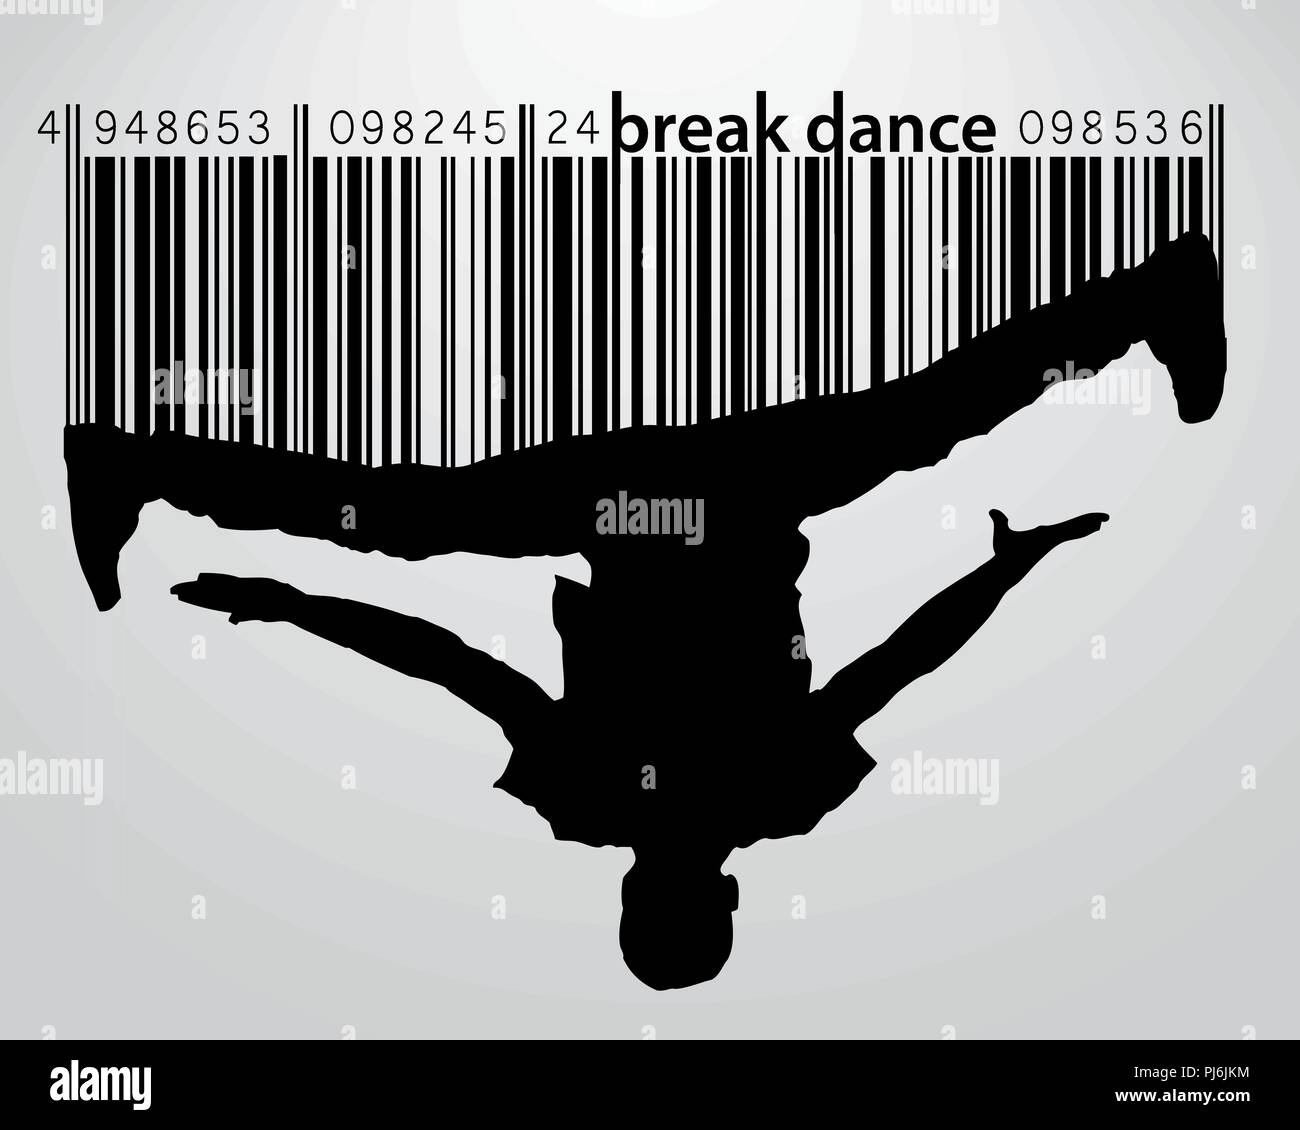 Silhouette of a break dancer. Background and text on a separate layer, color can be changed in one click - Stock Vector